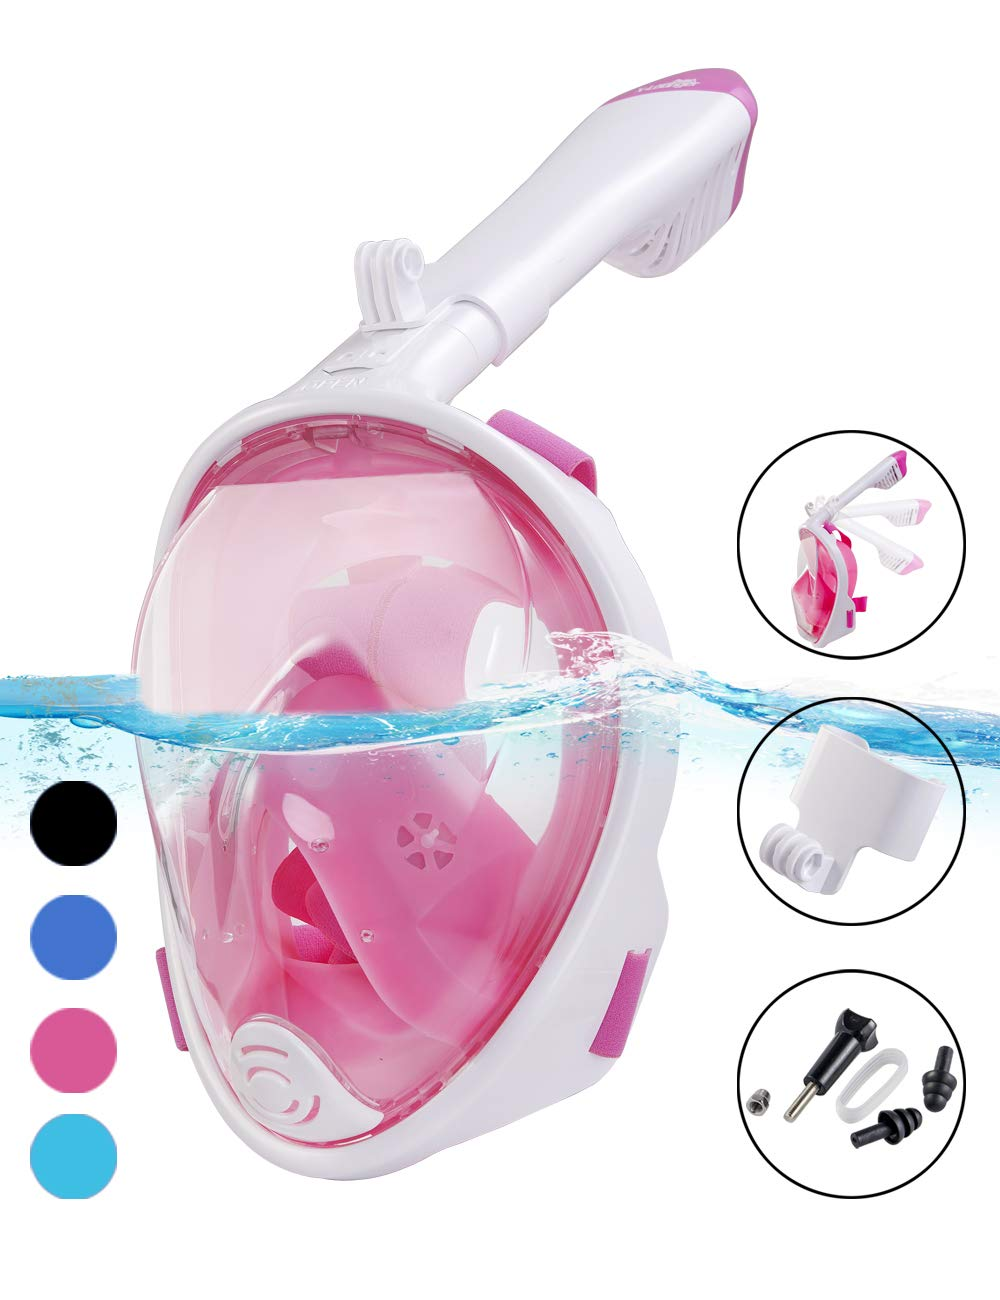 X-Lounger Snorkel Mask, 2019 New Foldable Snorkeling Mask Full Face with Detachable Camera Mount Pivot Arm and Earplug, 180° Large View Easy Breath Dry Top Set Anti-Fog Anti-Leak for Adults Pink S M